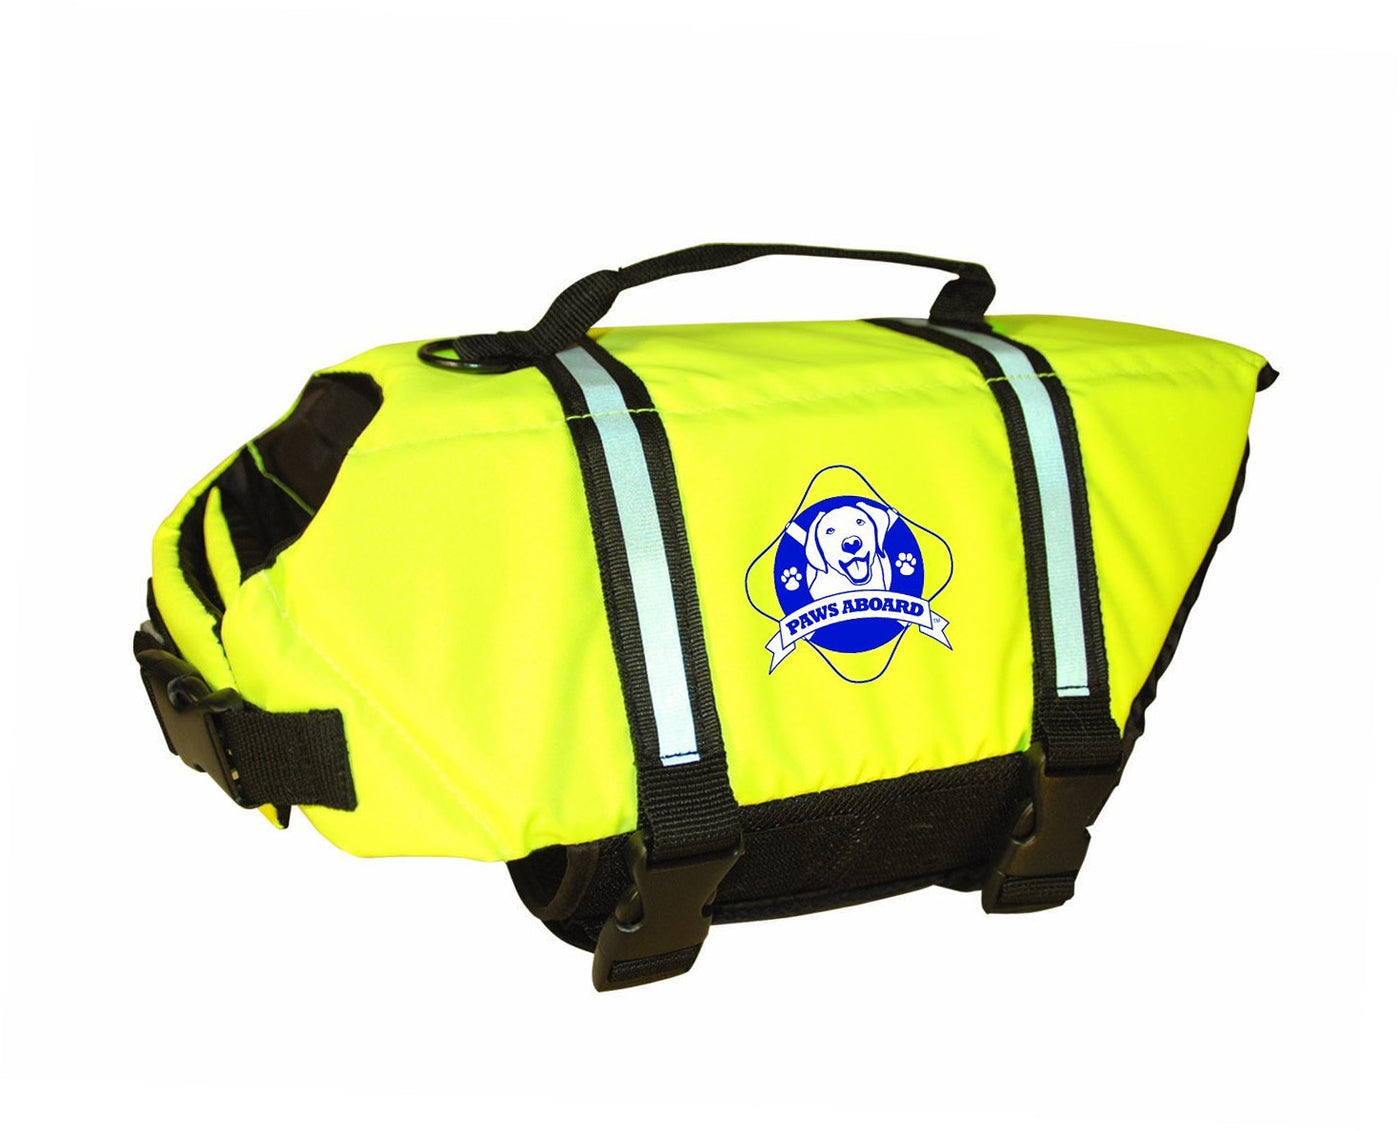 Paws Aboard Yellow Doggy Life Vest for Swimming or Boating